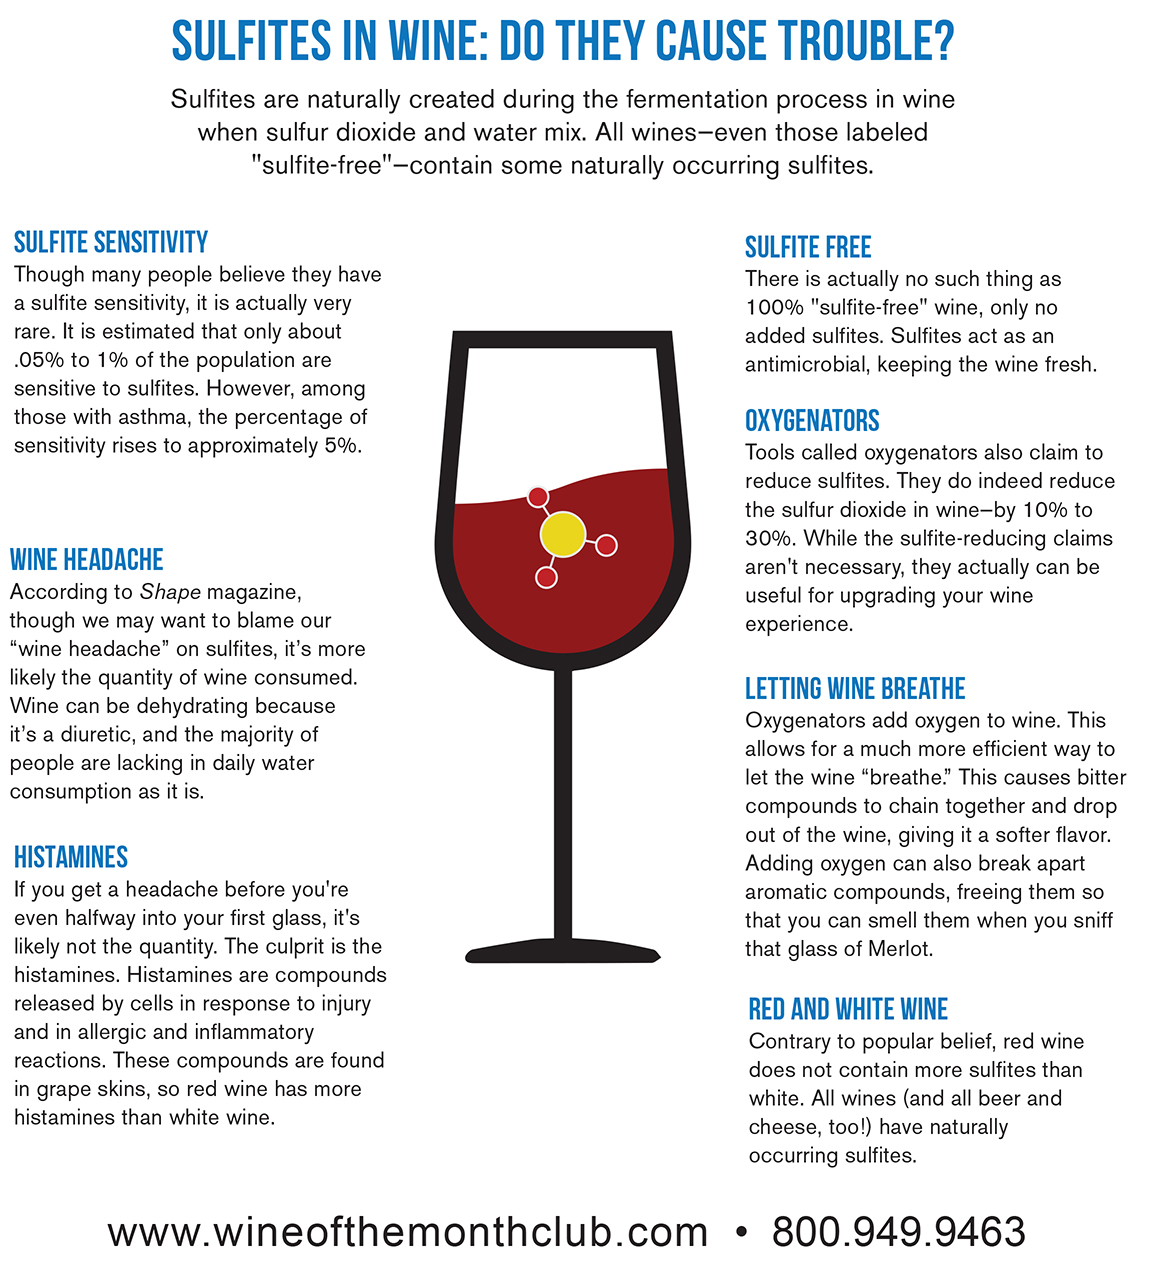 Sulfites in Wine: Do They Cause Trouble?